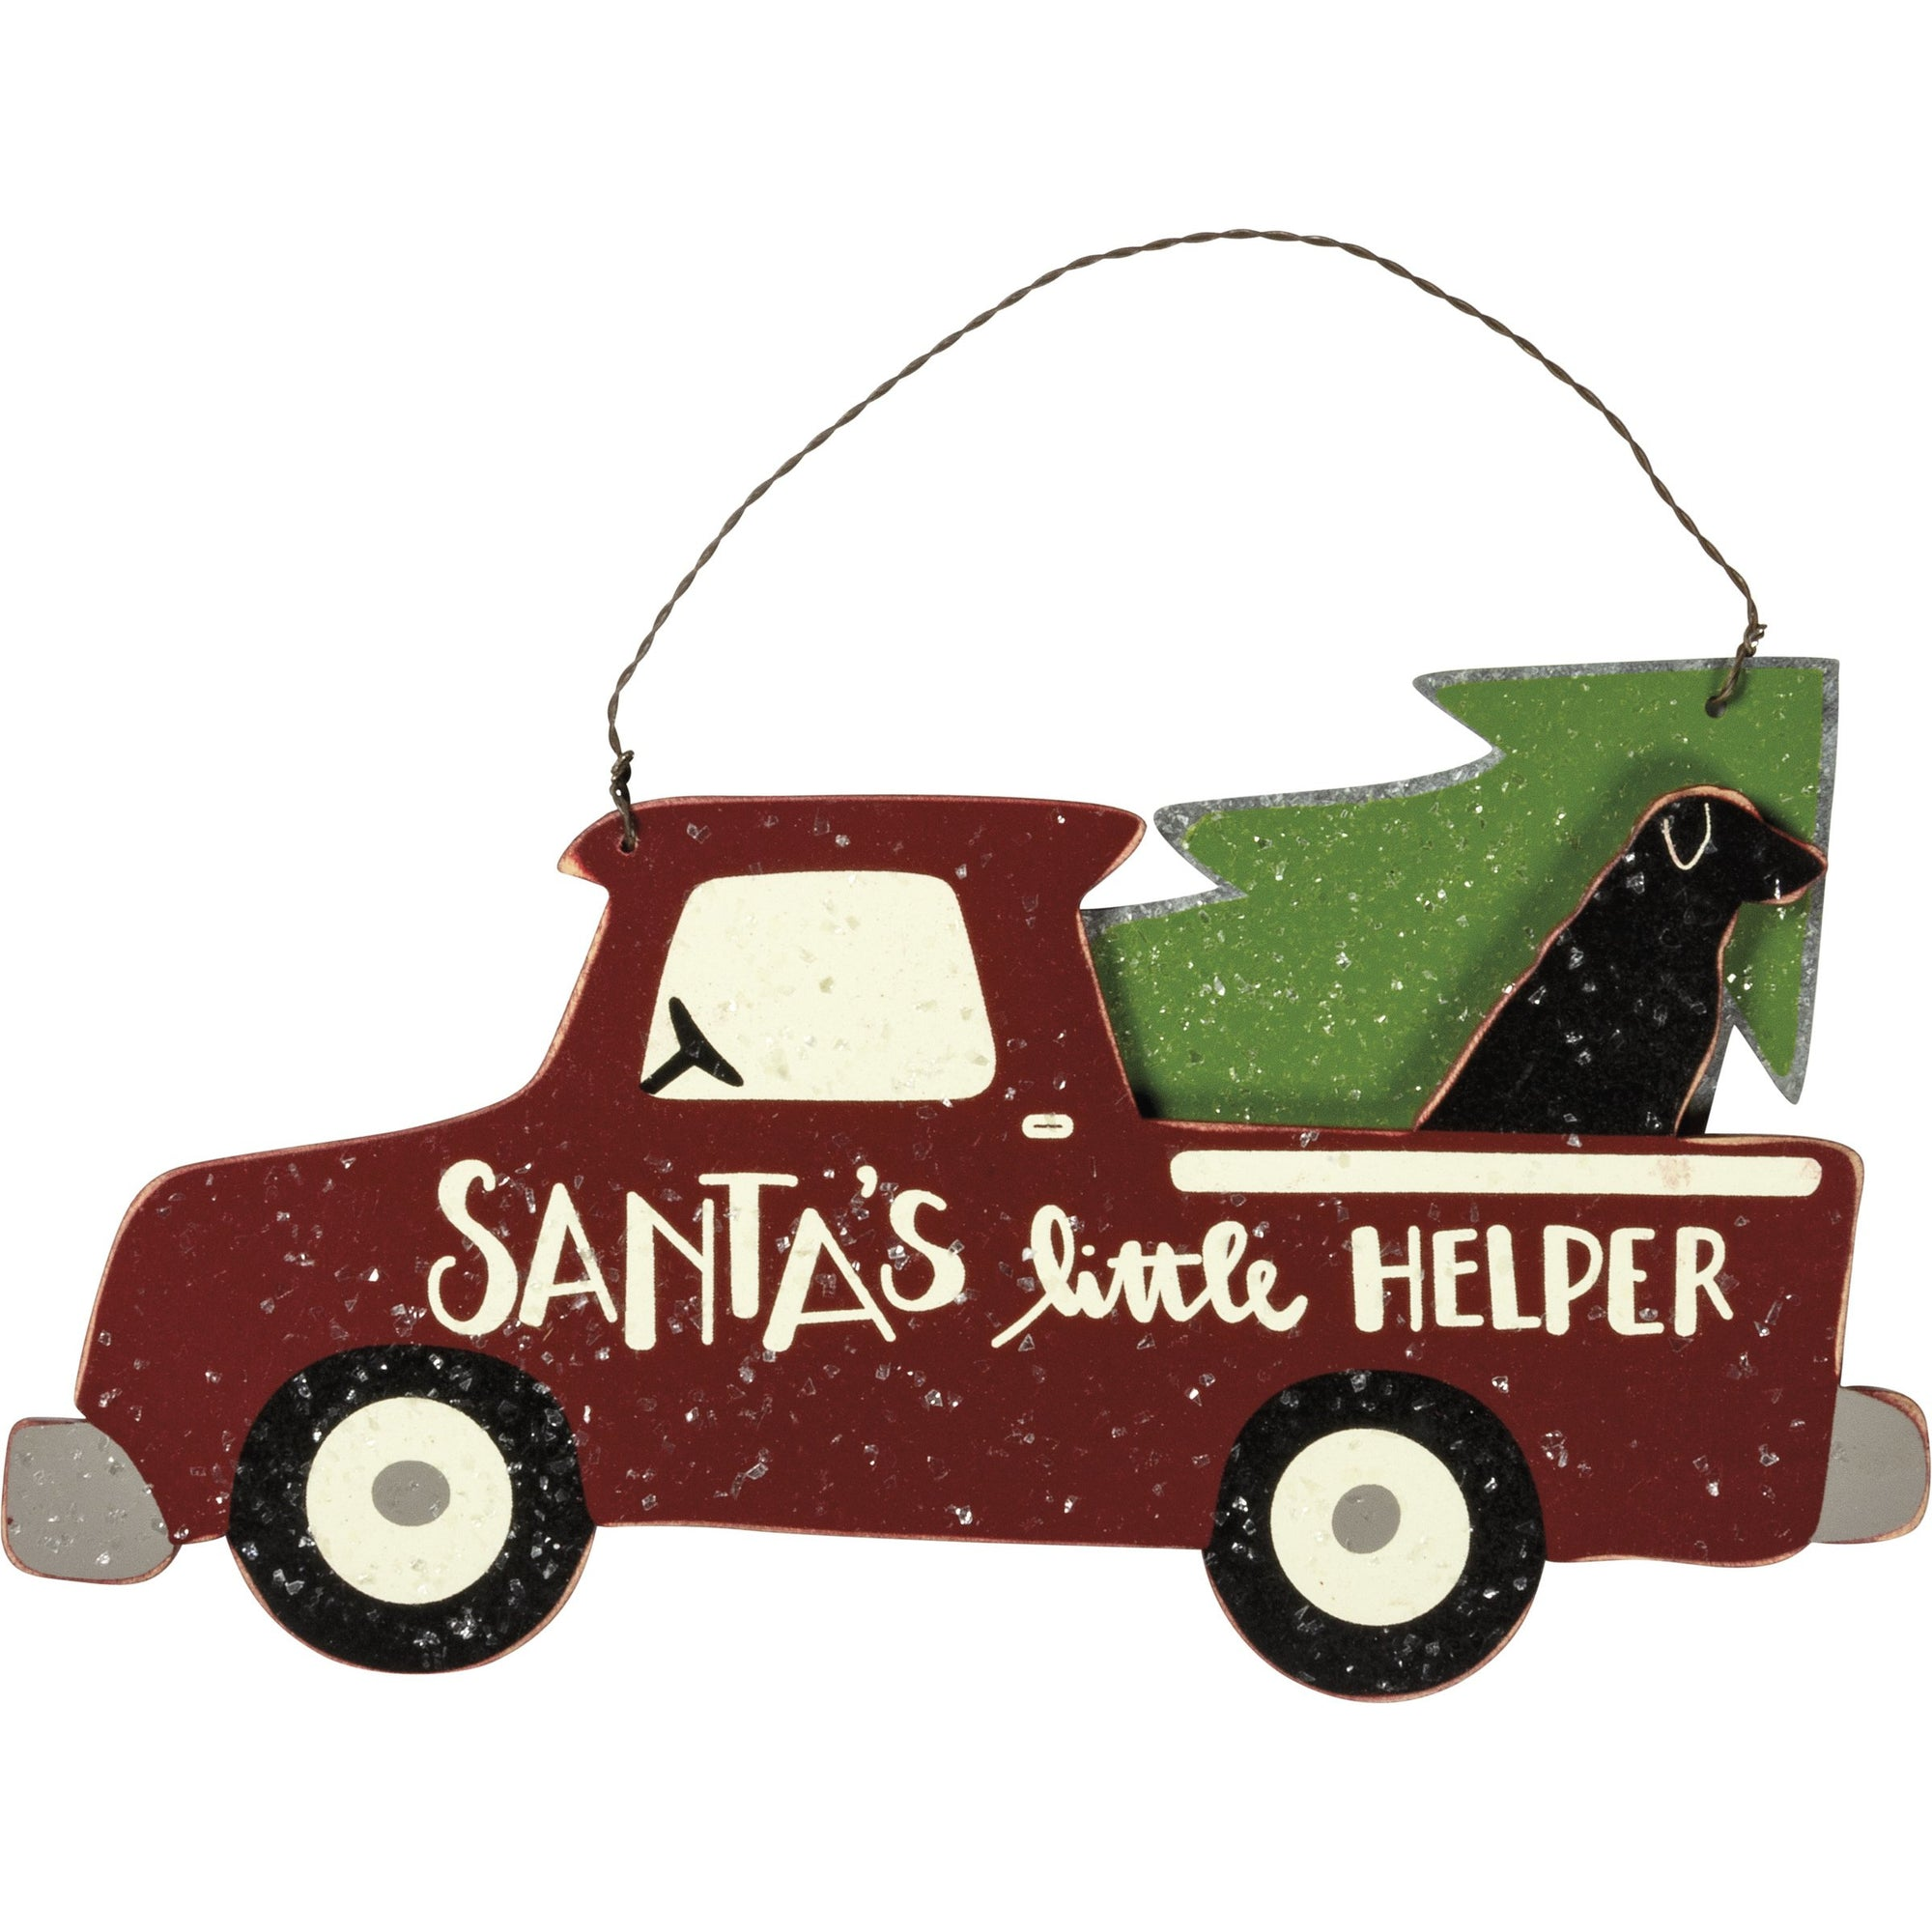 Primitives by Kathy - Hanging Decor, Santa's Helper